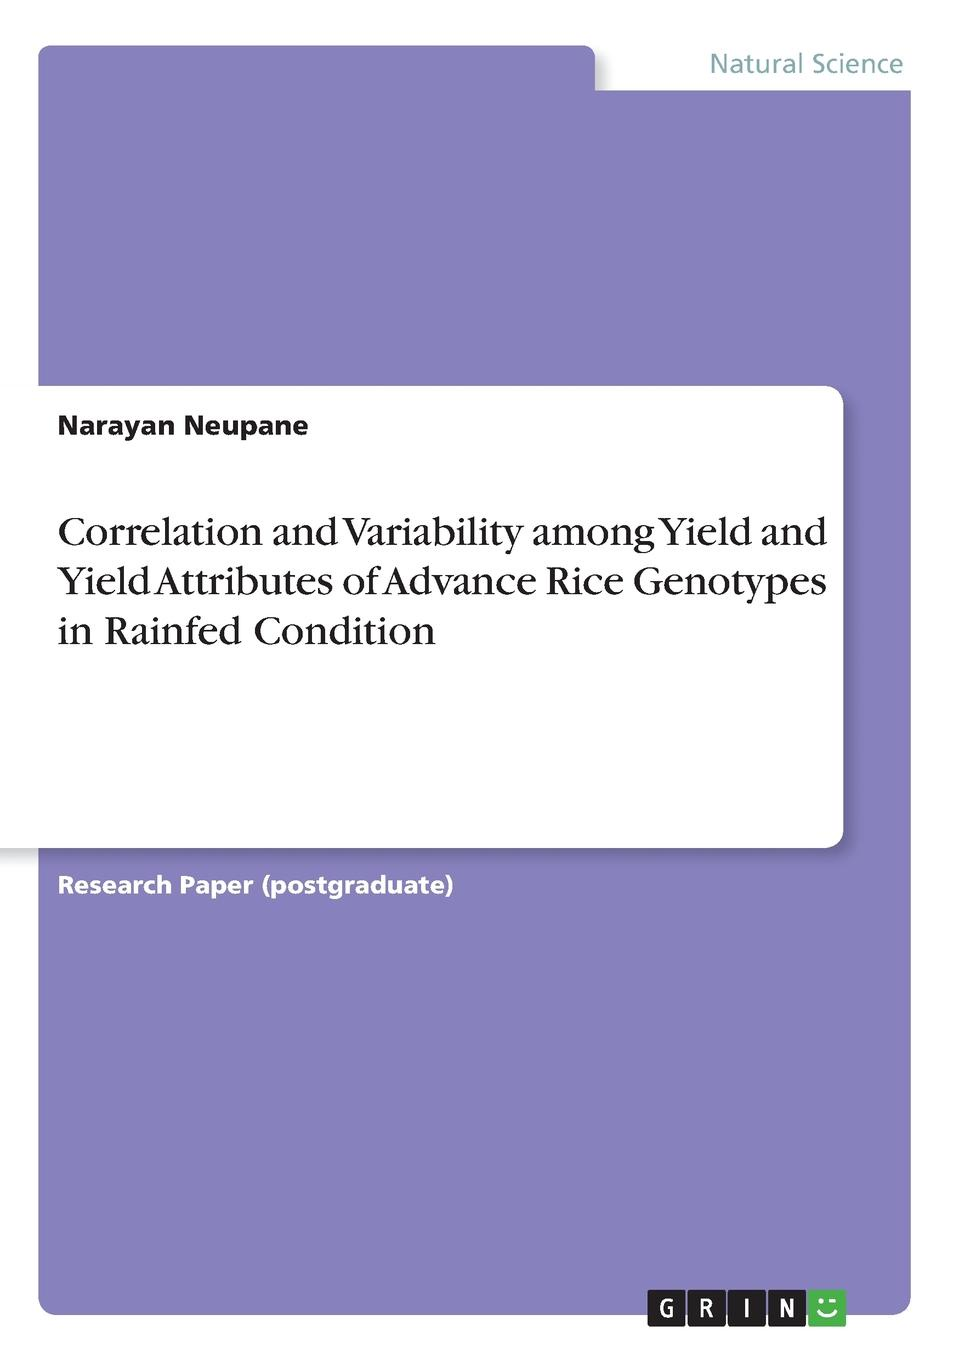 Narayan Neupane Correlation and Variability among Yield and Yield Attributes of Advance Rice Genotypes in Rainfed Condition микроволновая печь bbk 23mwg 850t b m